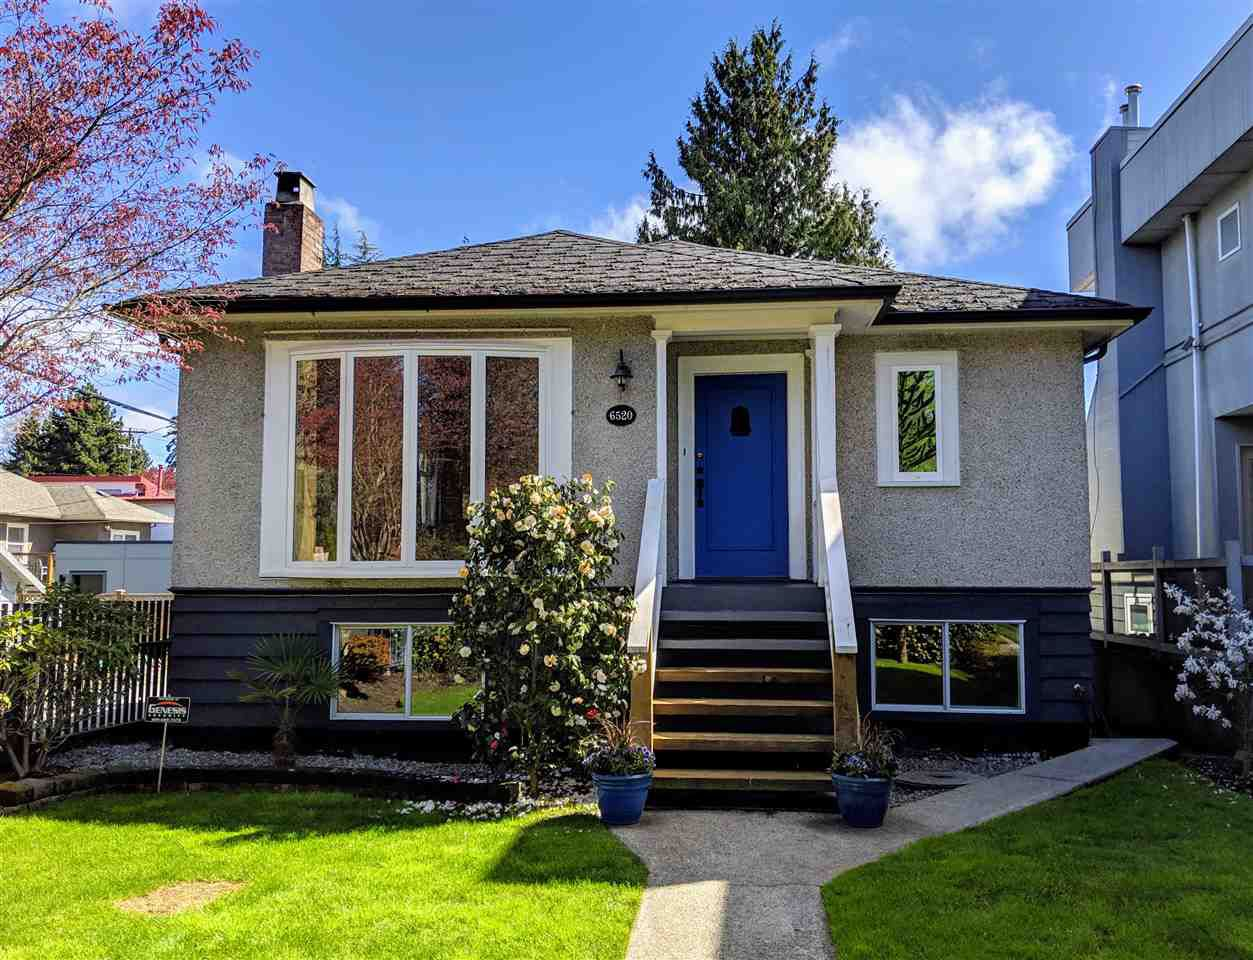 """Main Photo: 6520 VINE Street in Vancouver: S.W. Marine House for sale in """"Kerrisdale"""" (Vancouver West)  : MLS®# R2366605"""